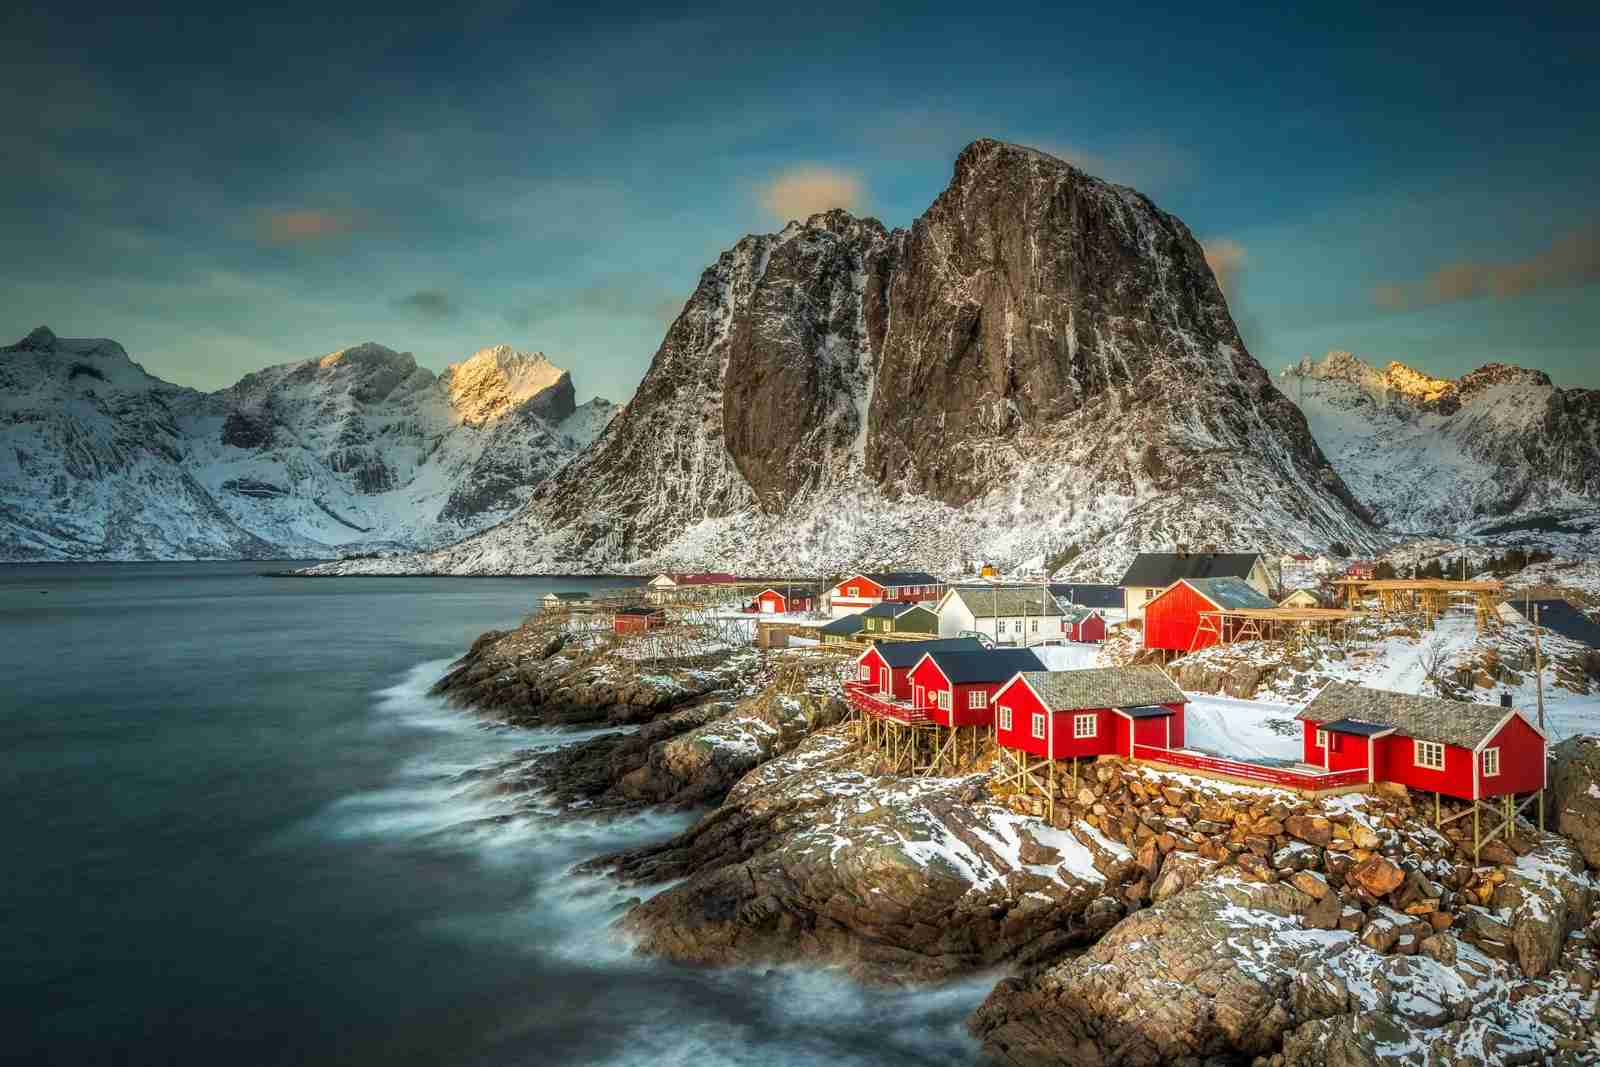 Lofoten Islands in Norway. (Photo by Kenneth Schoth/Getty Images)